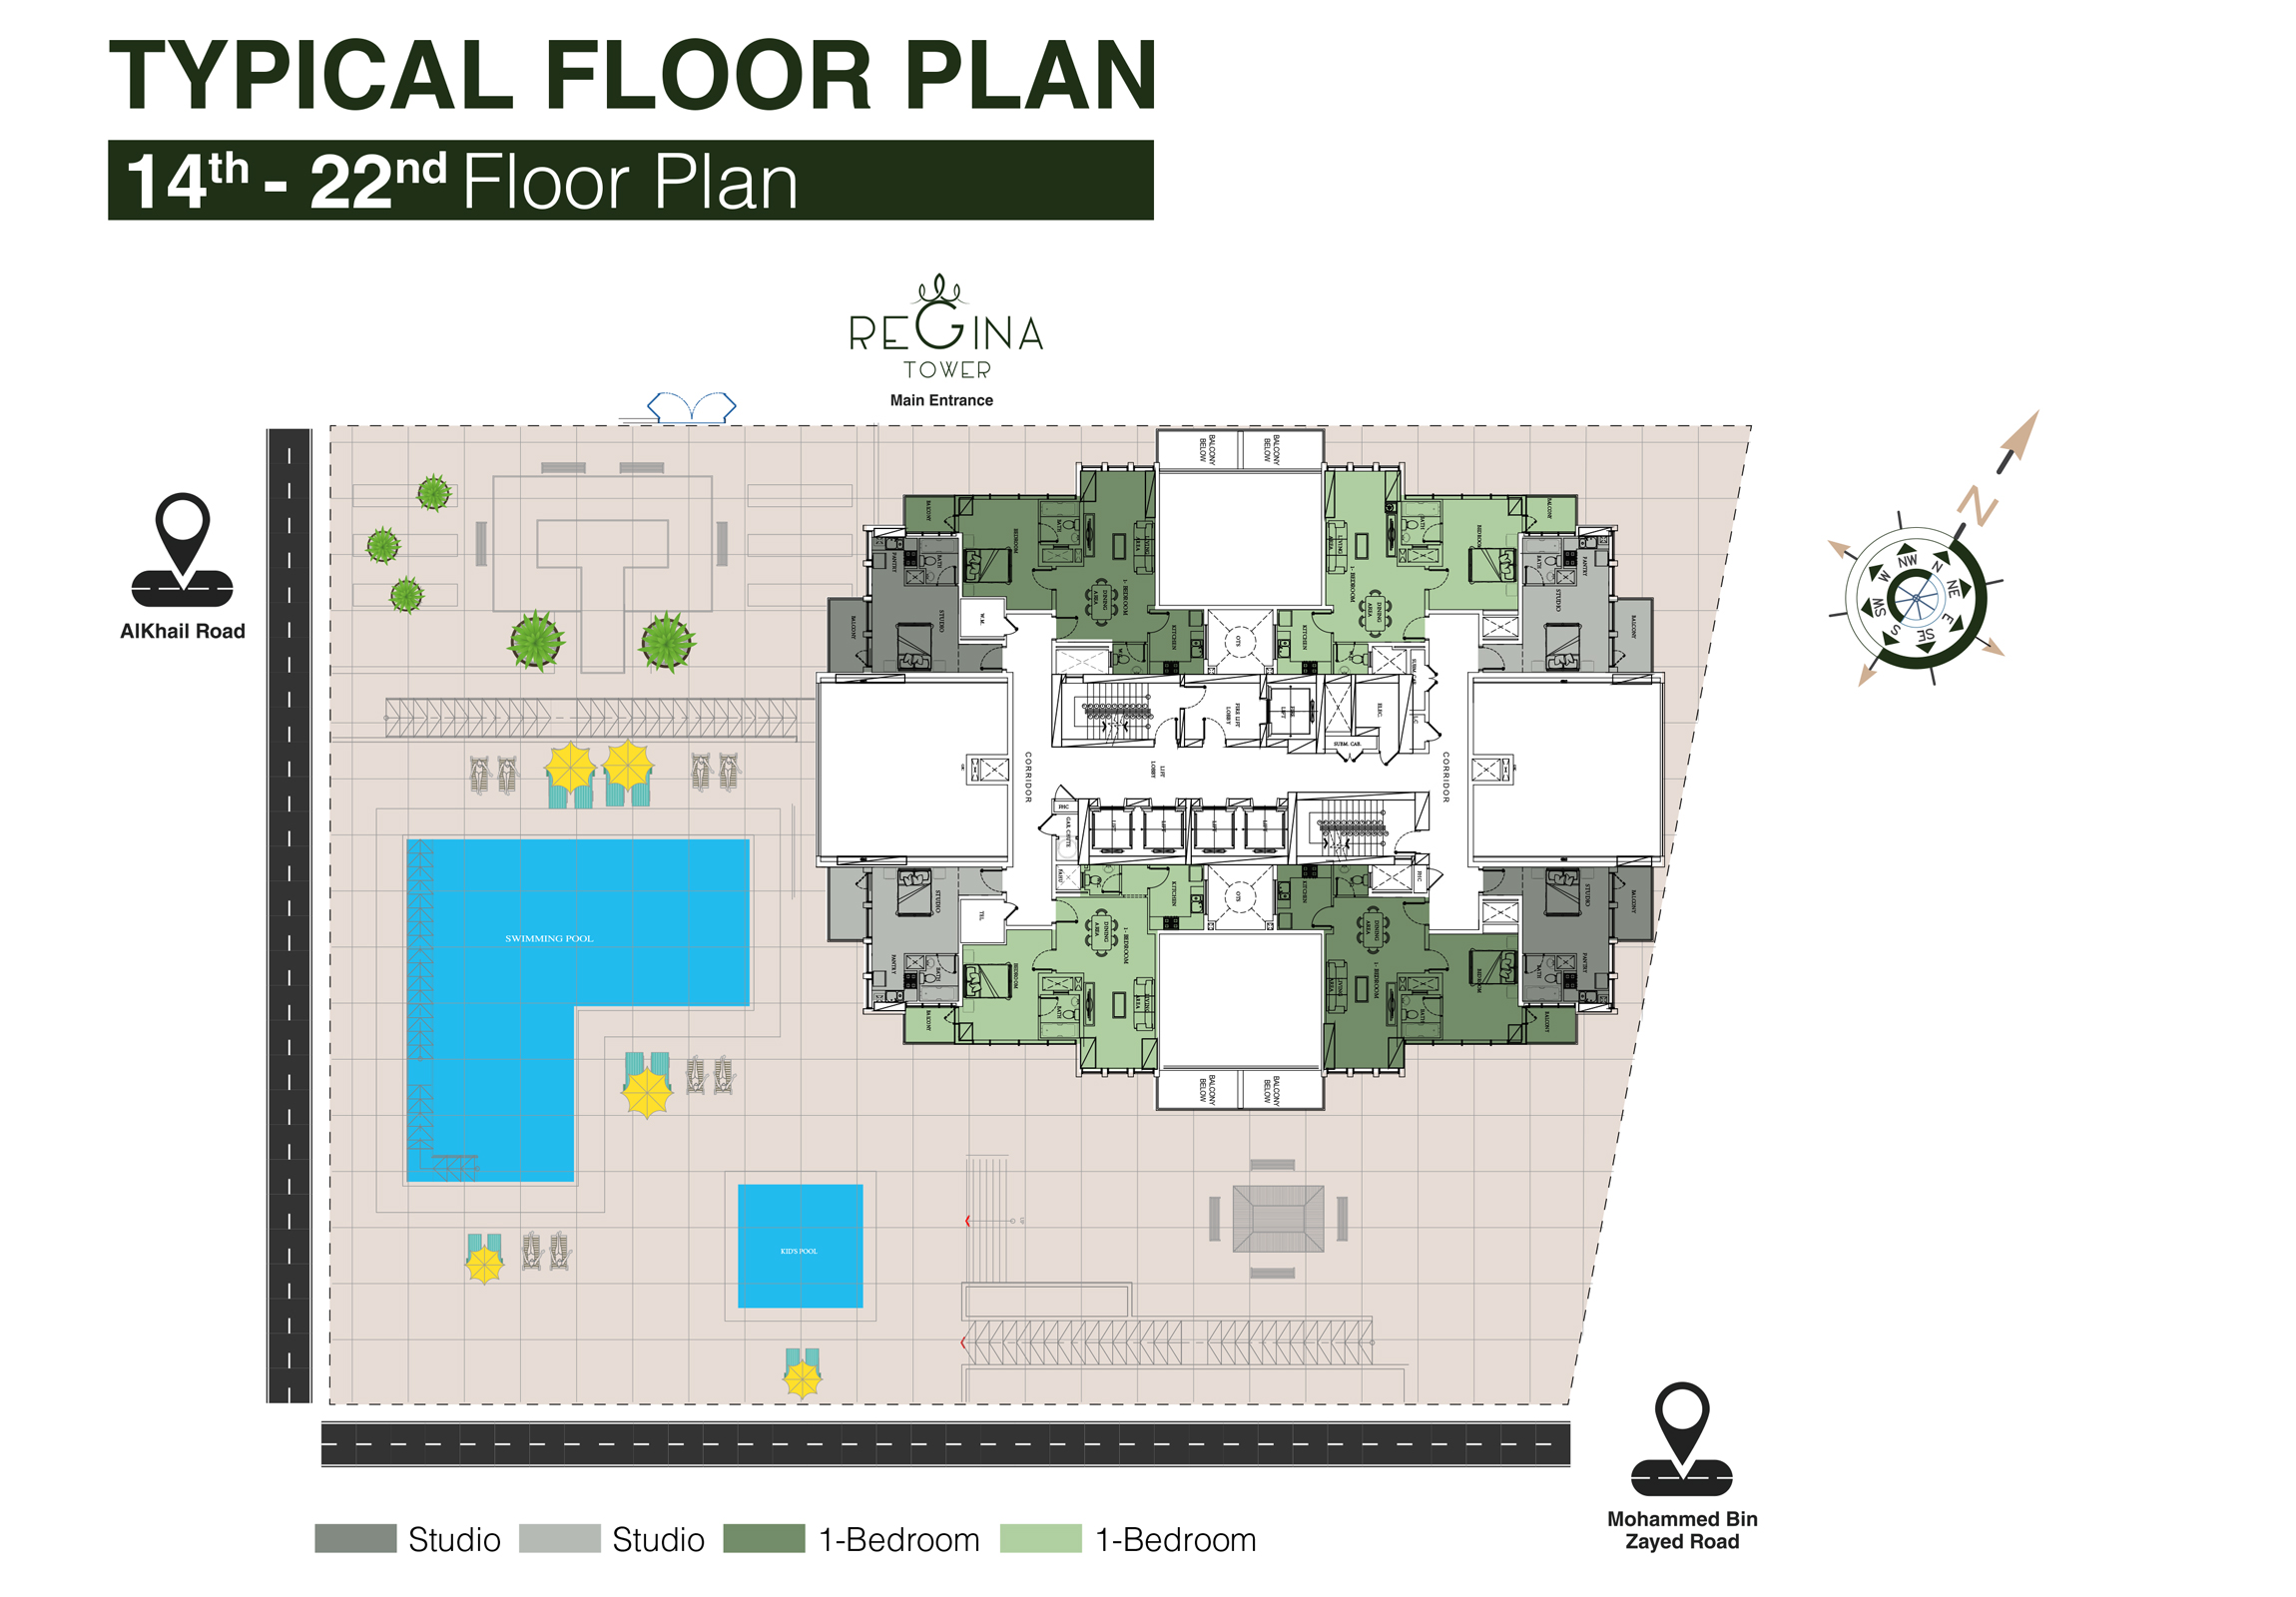 Typical Floor Plan 14th to 22nd Floor